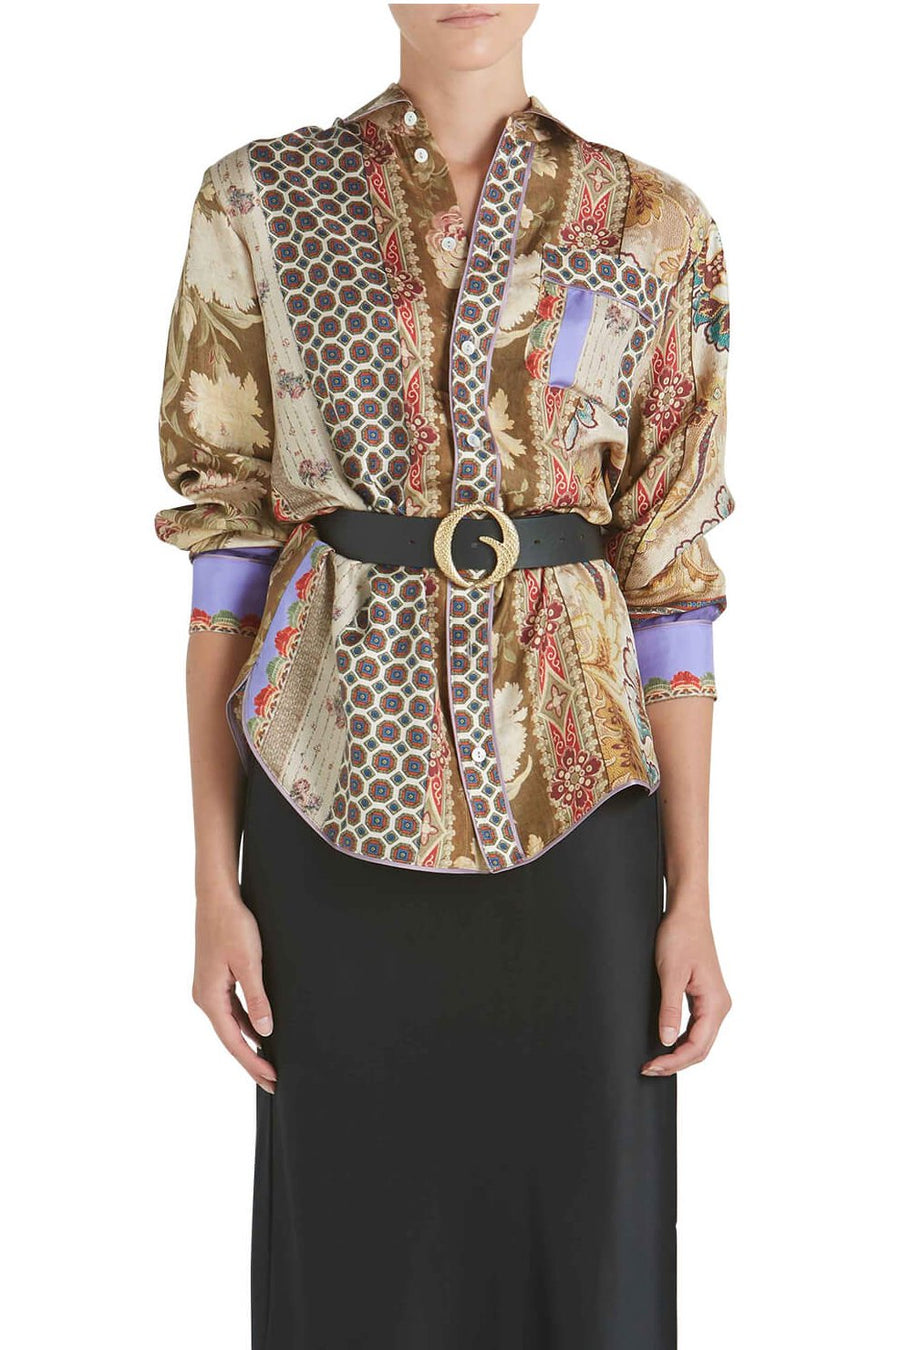 Pierre-Louis Mascia Silk Long Sleeve Shirt in Gold Spliced from The New Trend.